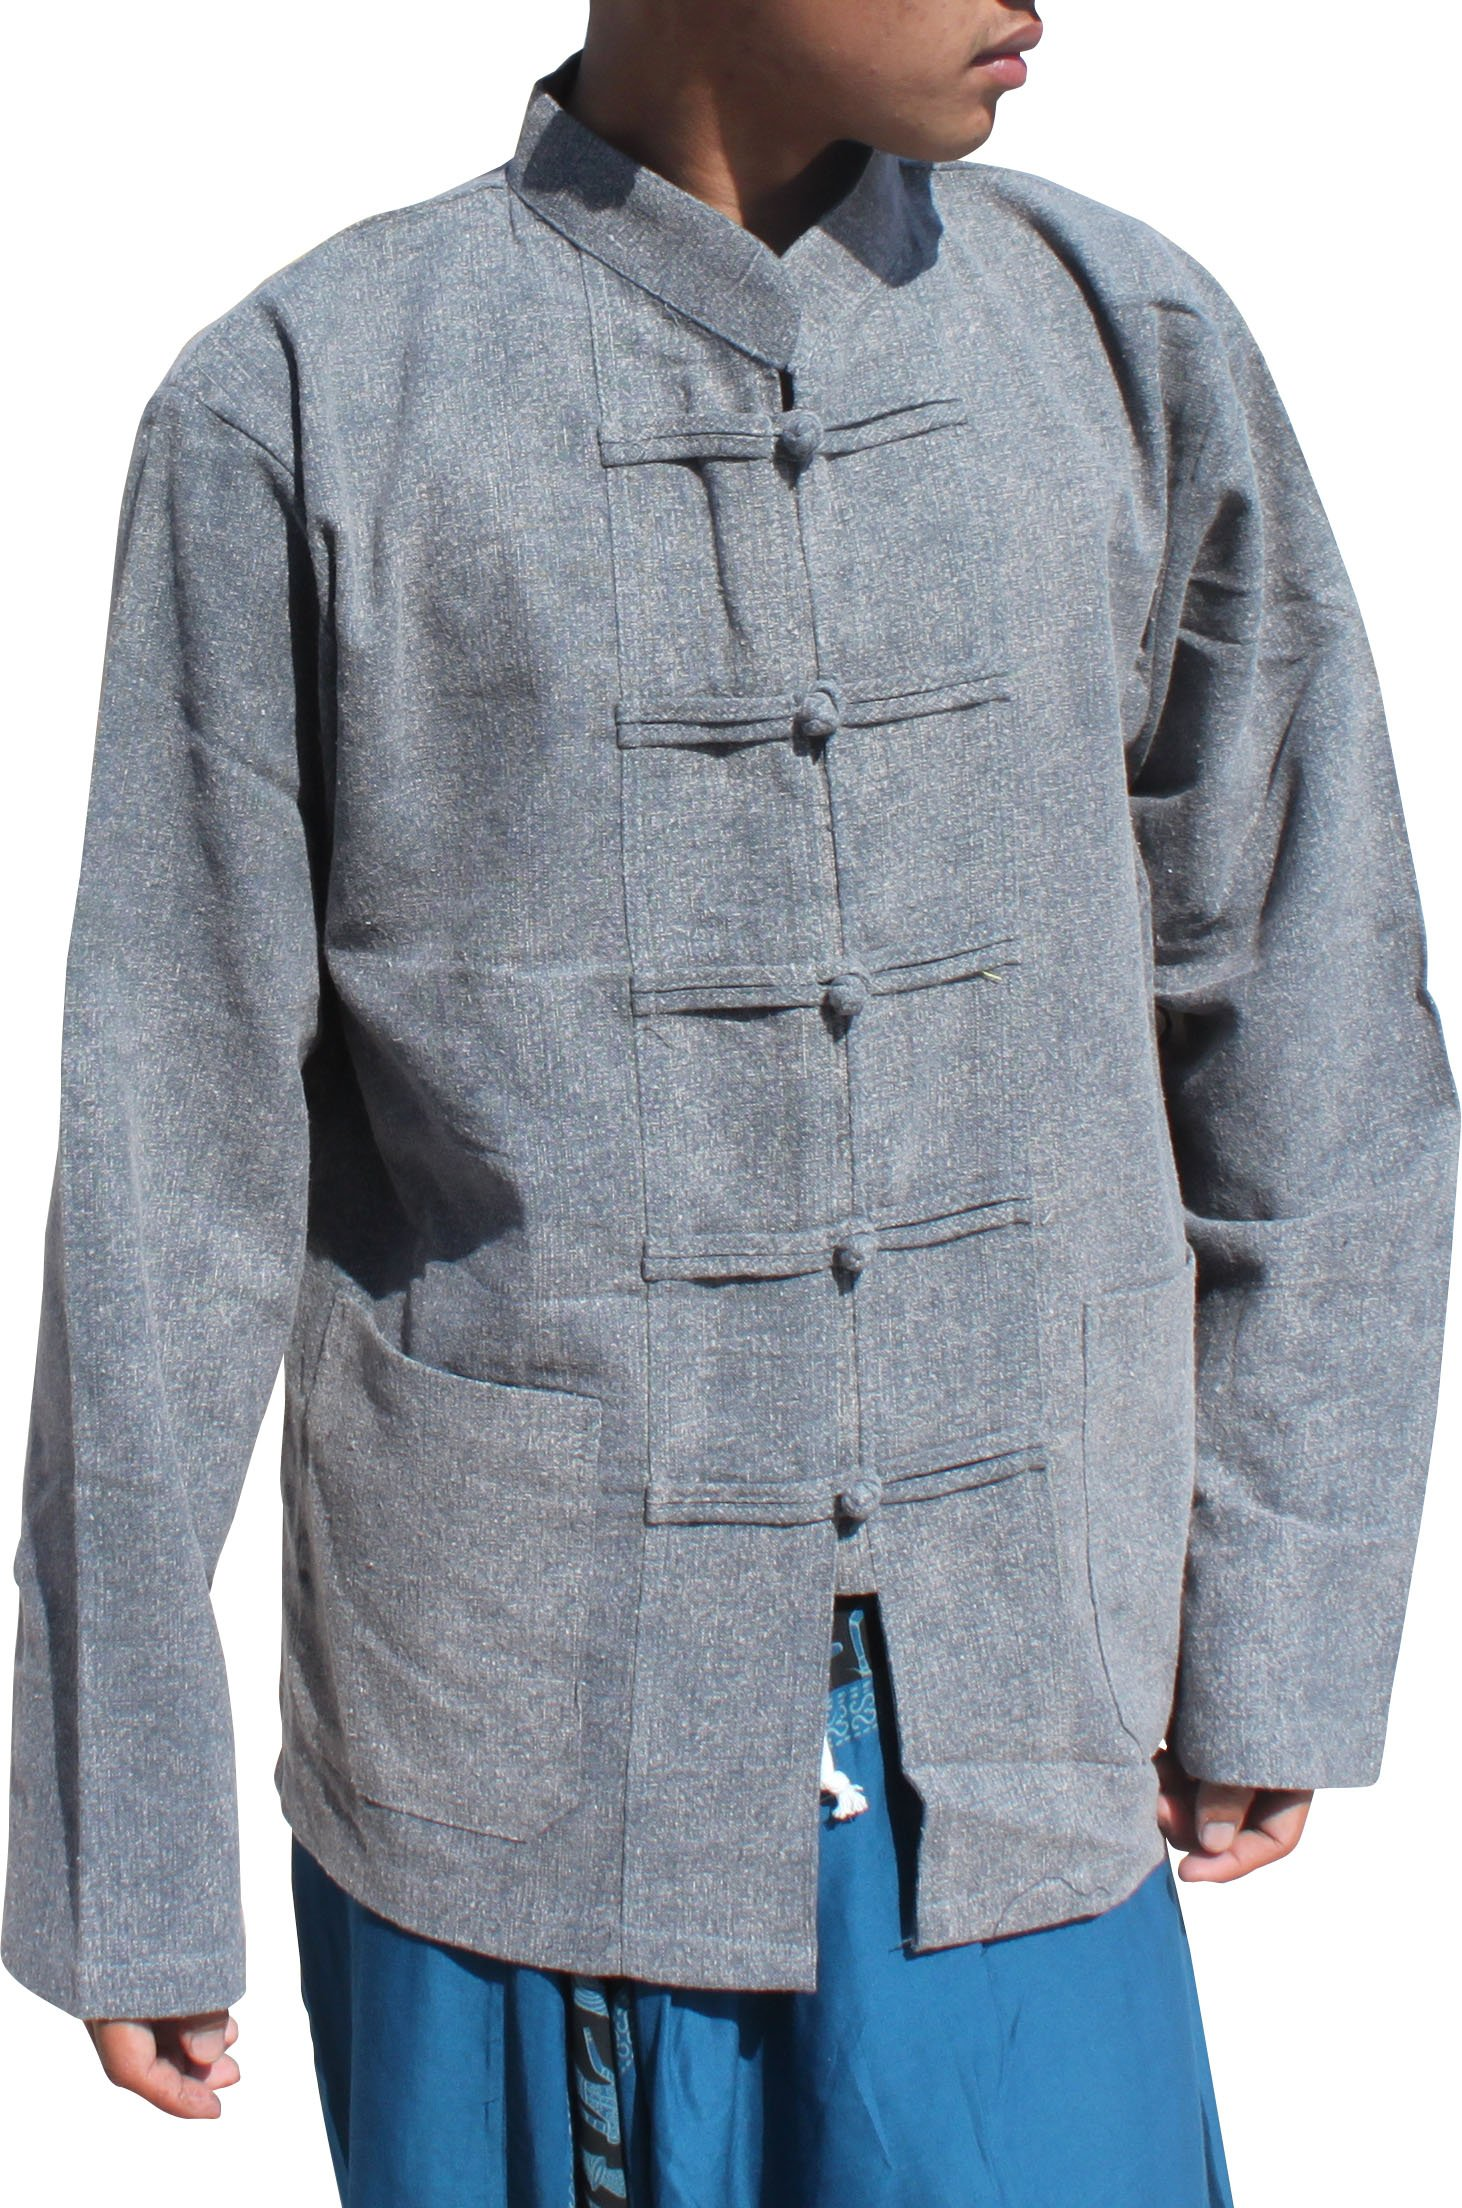 Raan Pah Muang Stonewash Medieval Cotton Shirt Chinese Jacket Collar Long Sleeve Plus, XX-Large, Gray